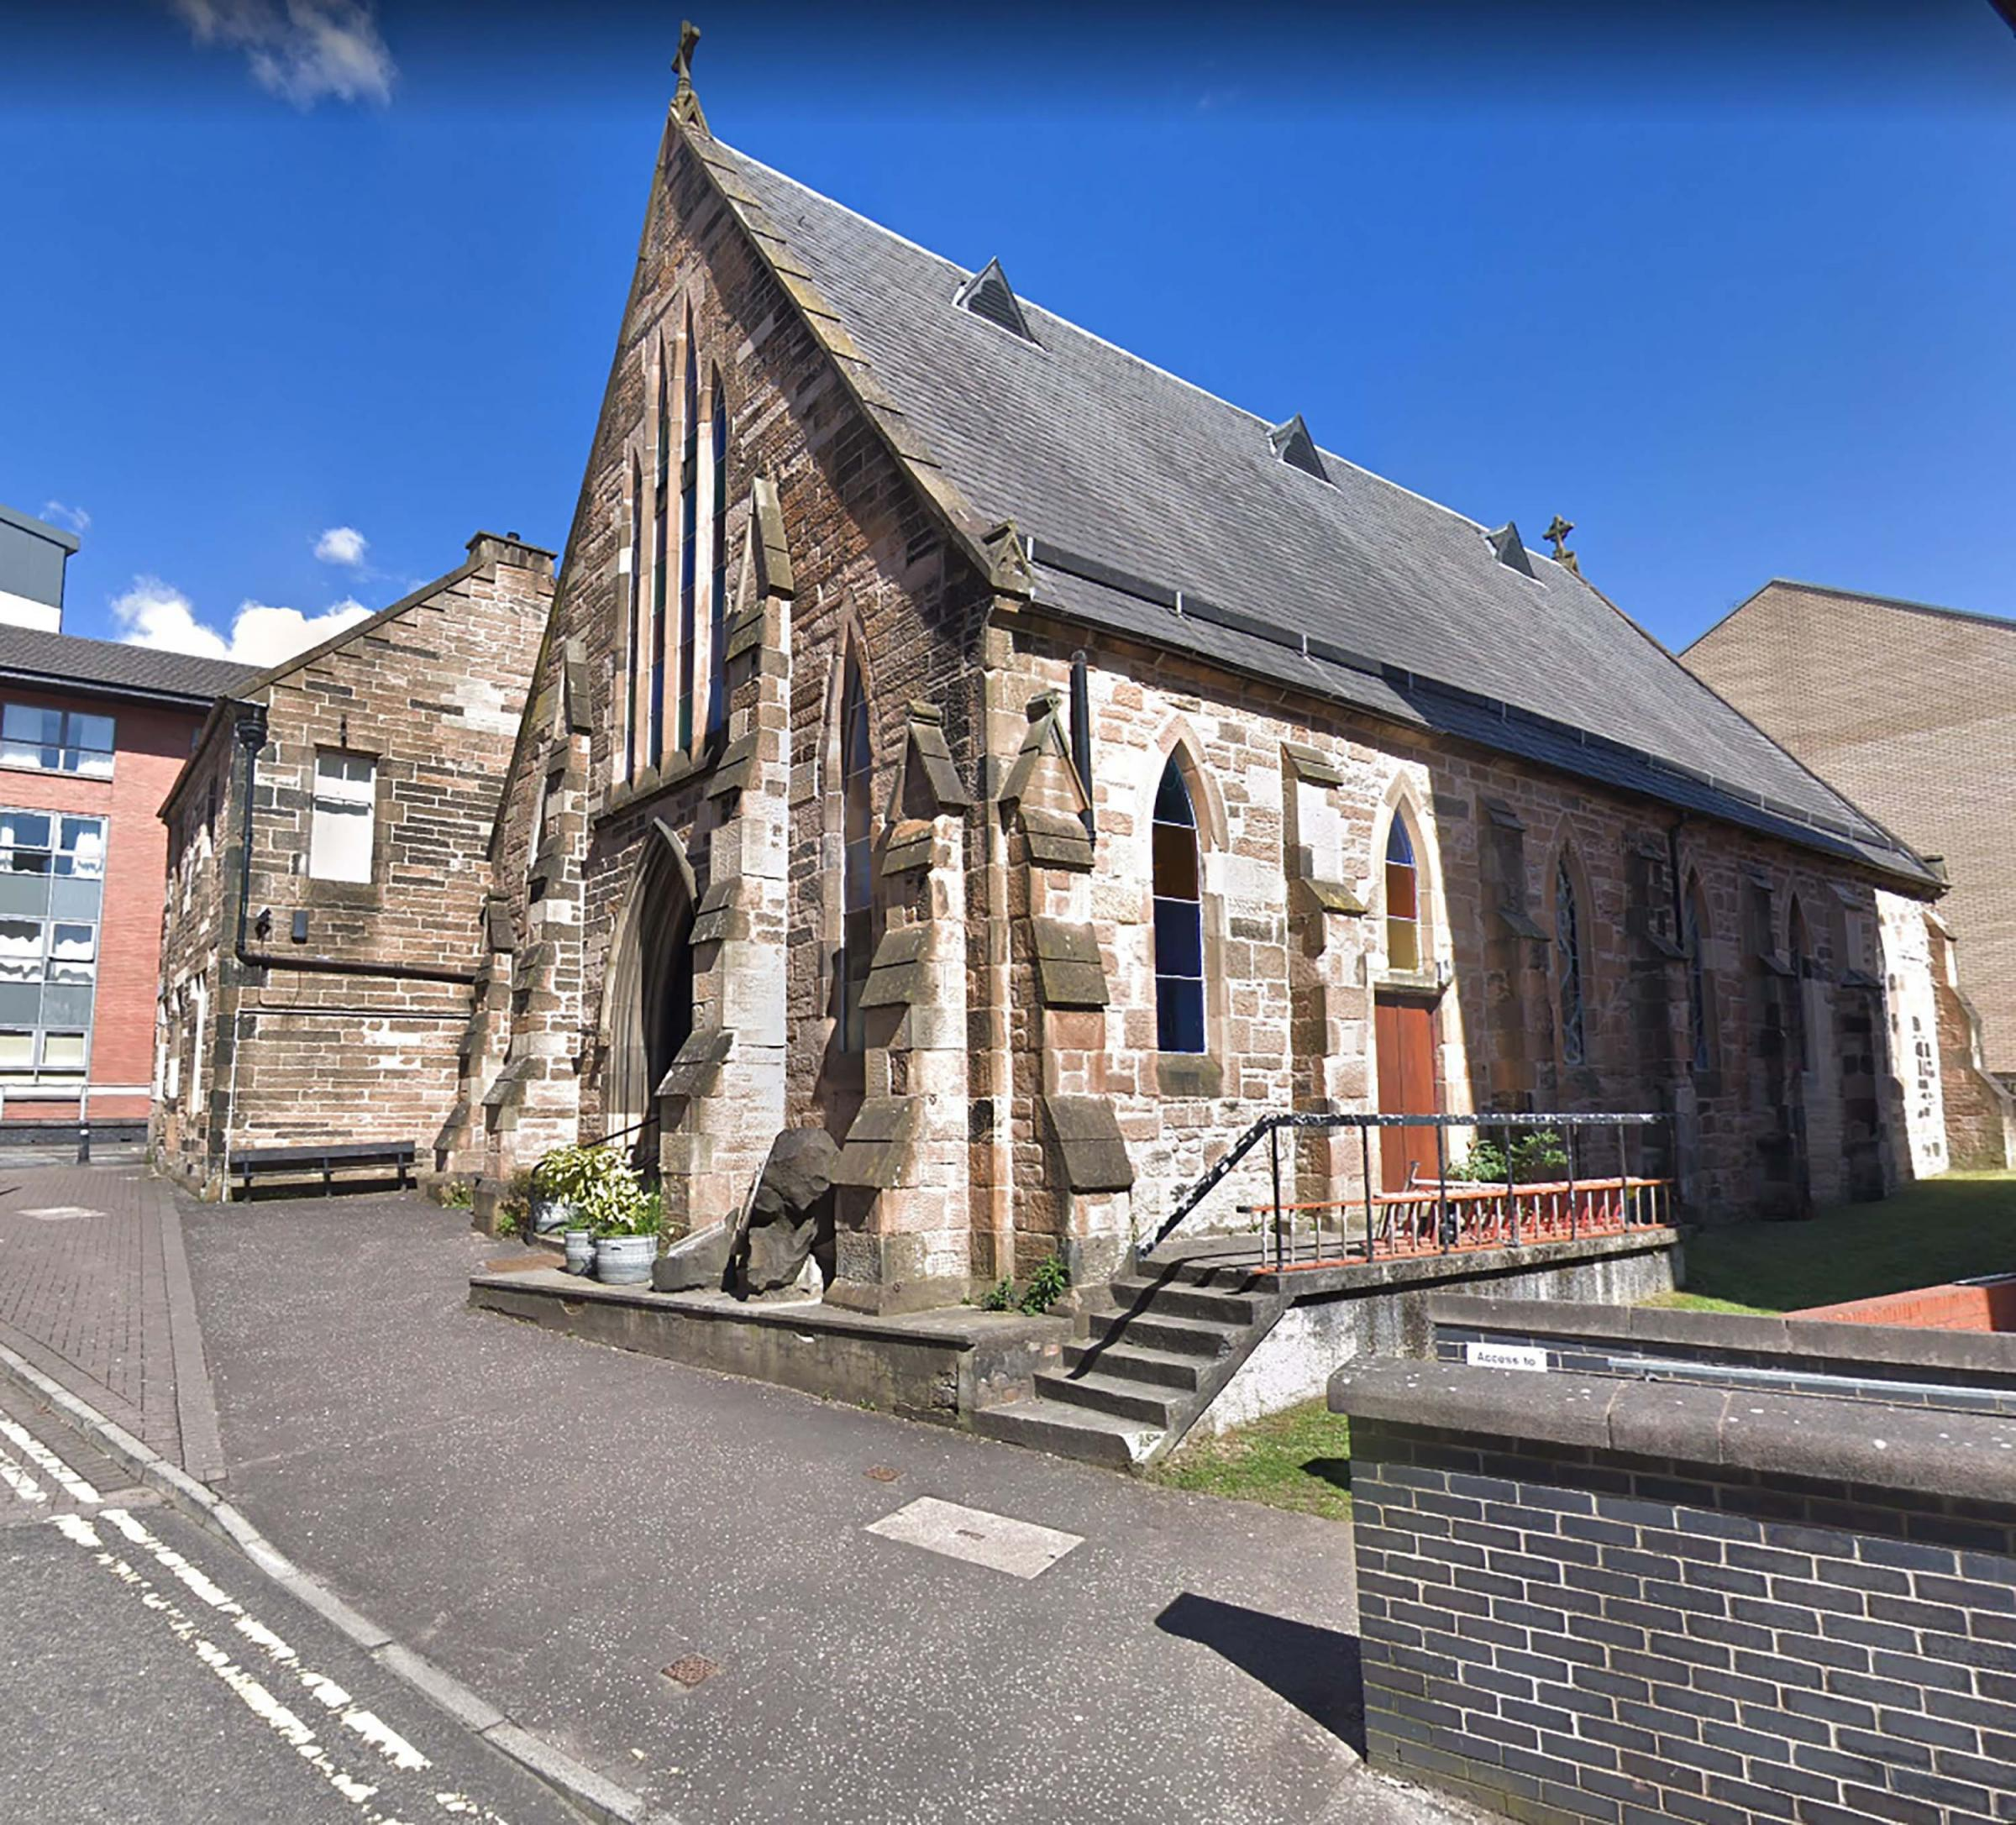 Glasgow's Catholic community reacts to attack on historic church